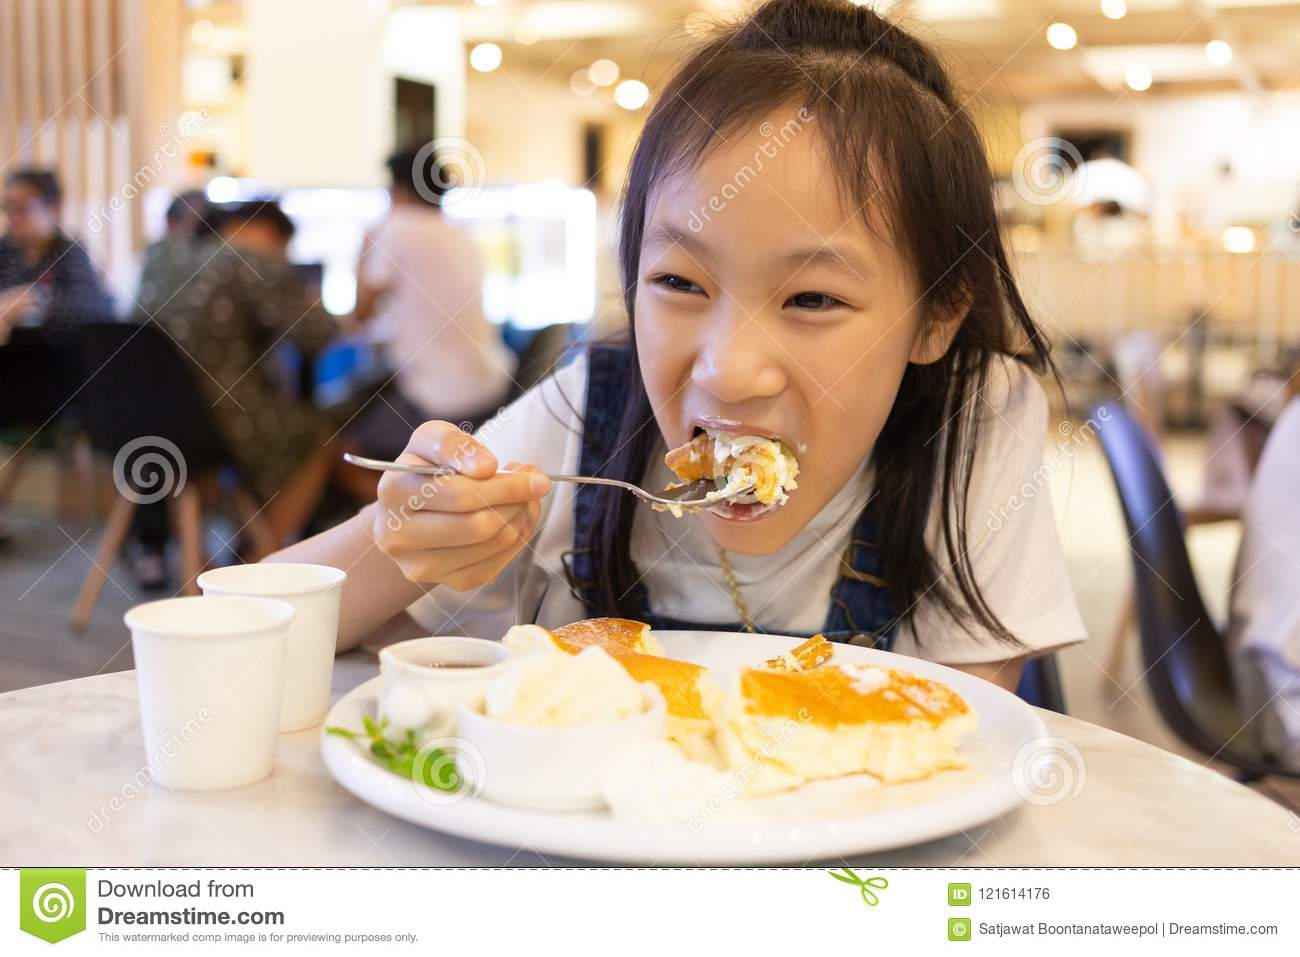 Attractive happy girl sitting and eating dessert,Close up portrait of a hungry greedy girl eating panckaces in the restaurant